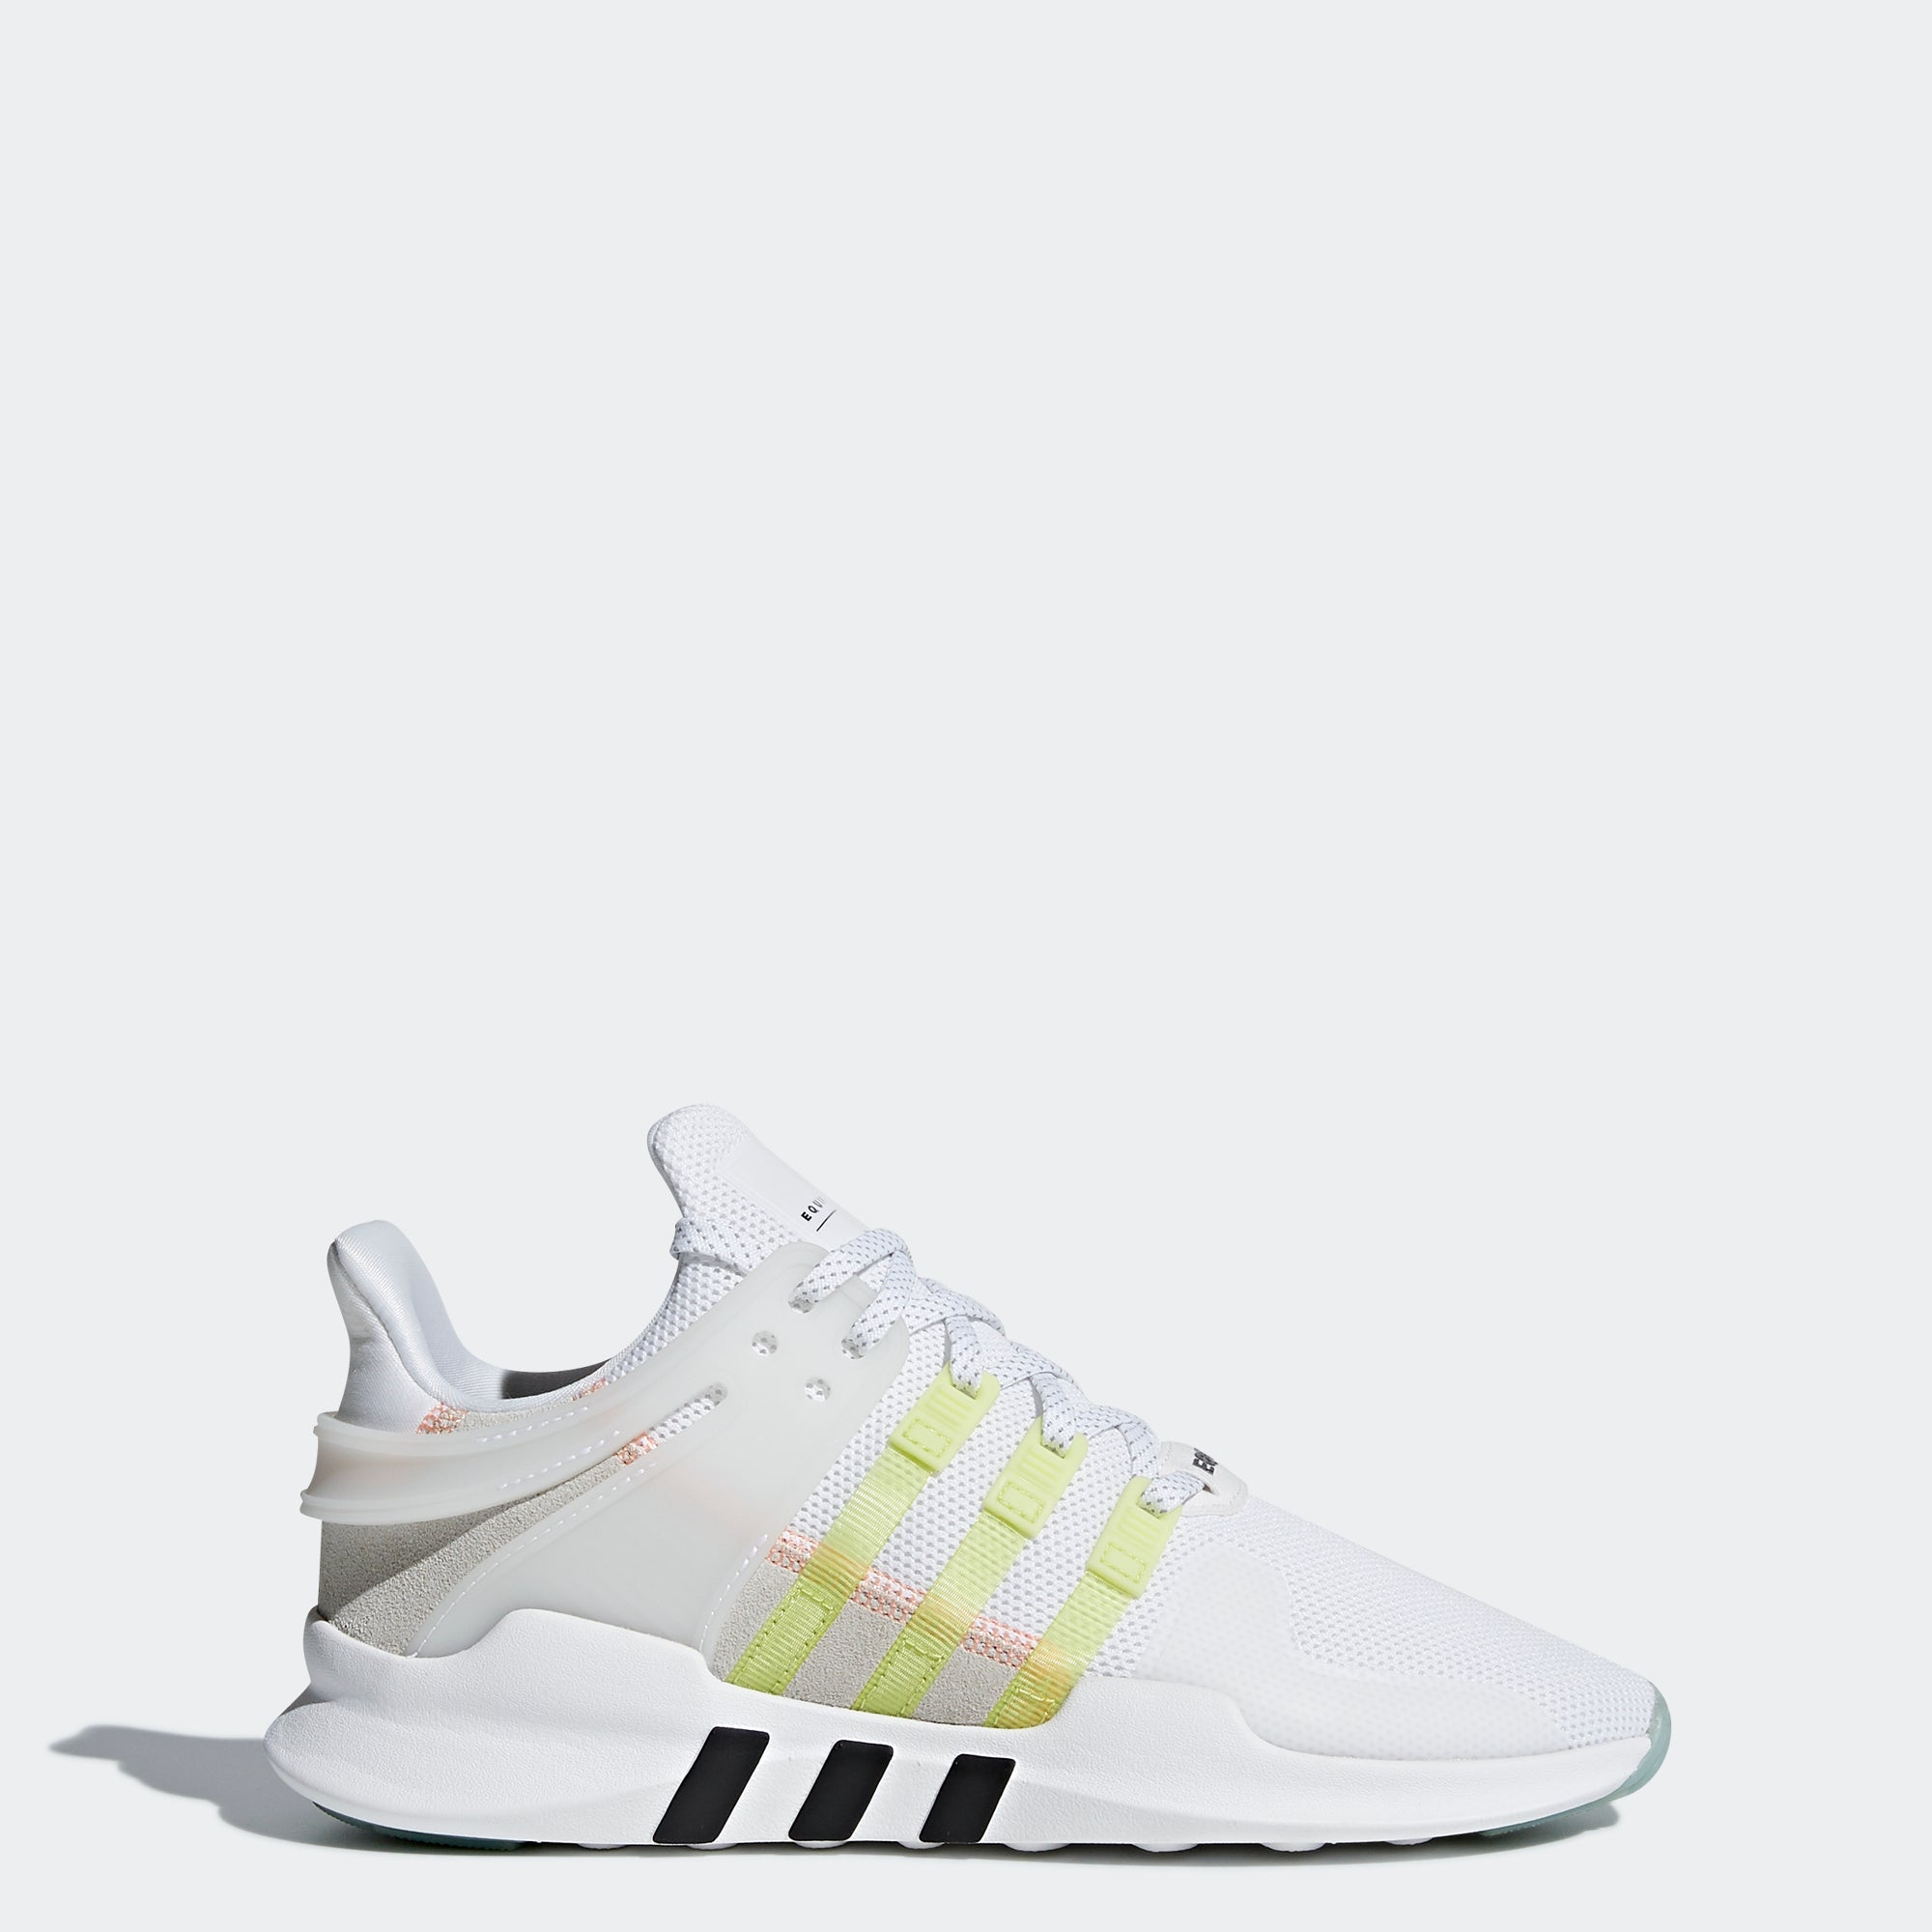 Women s Adidas Originals EQT Support ADV Shoes Cloud White and Yellow a25da8d2f6